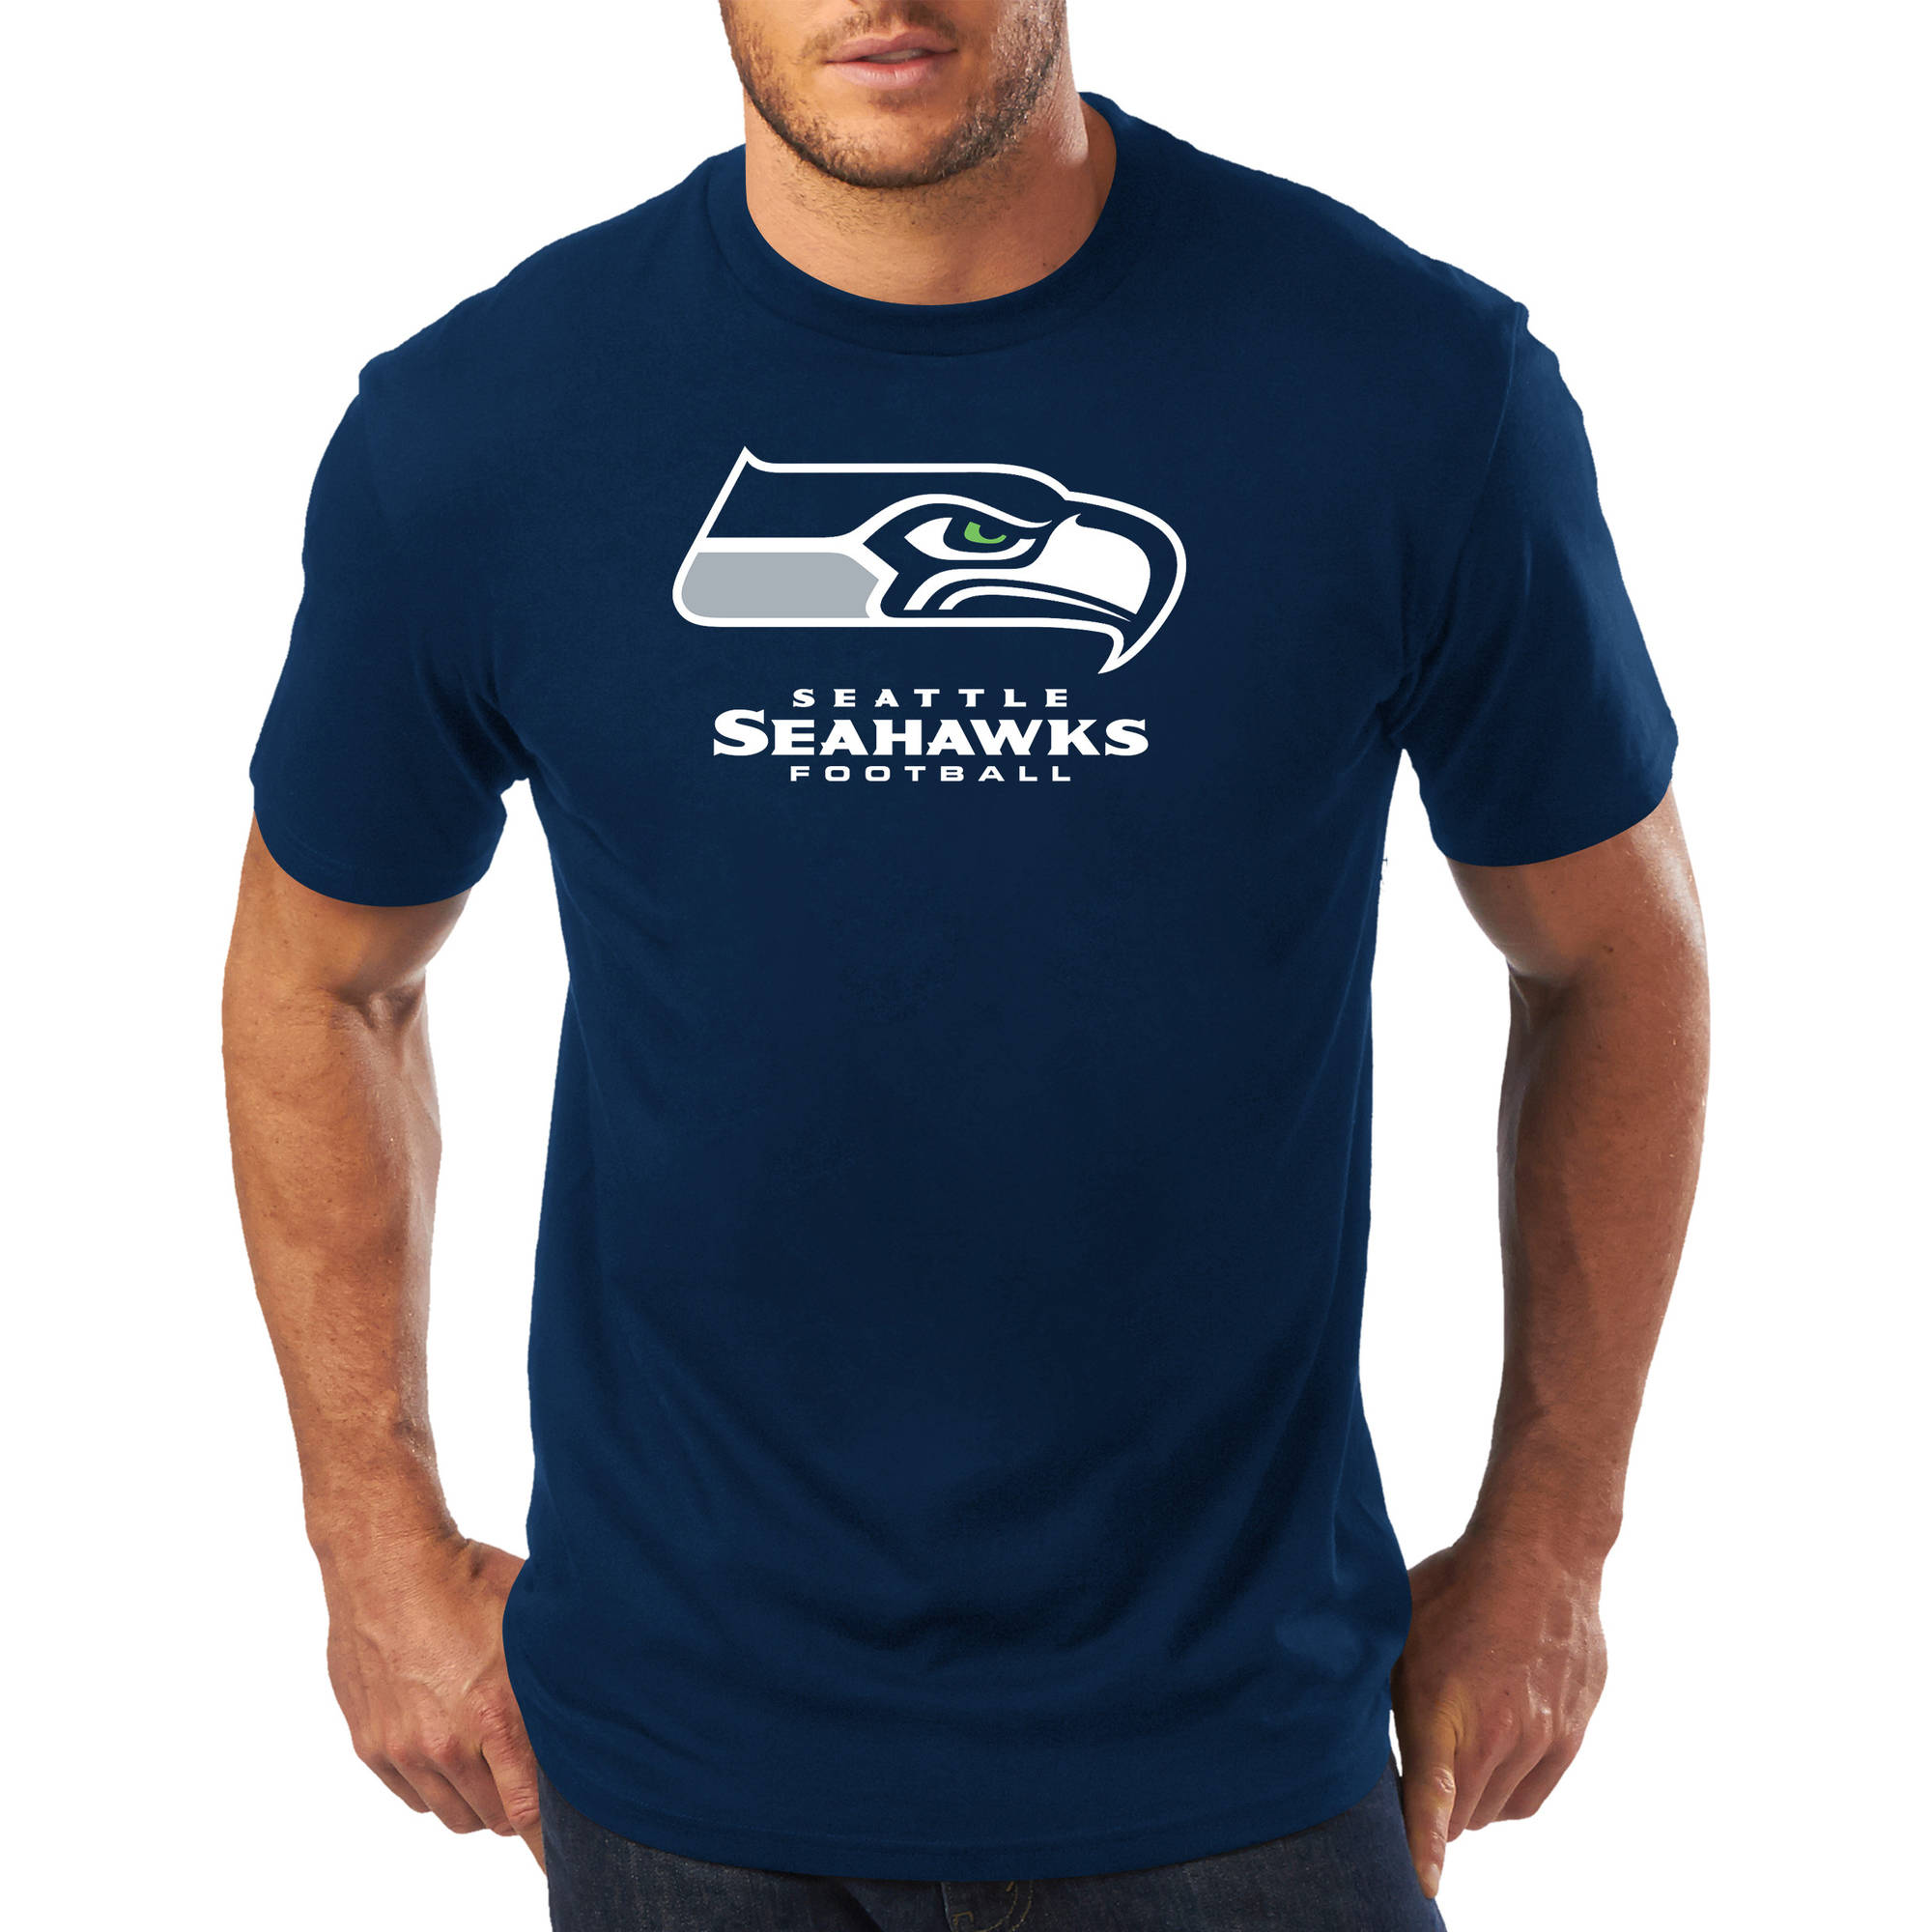 Big Men's NFL Seattle Seahawks Short Sleeve Tee